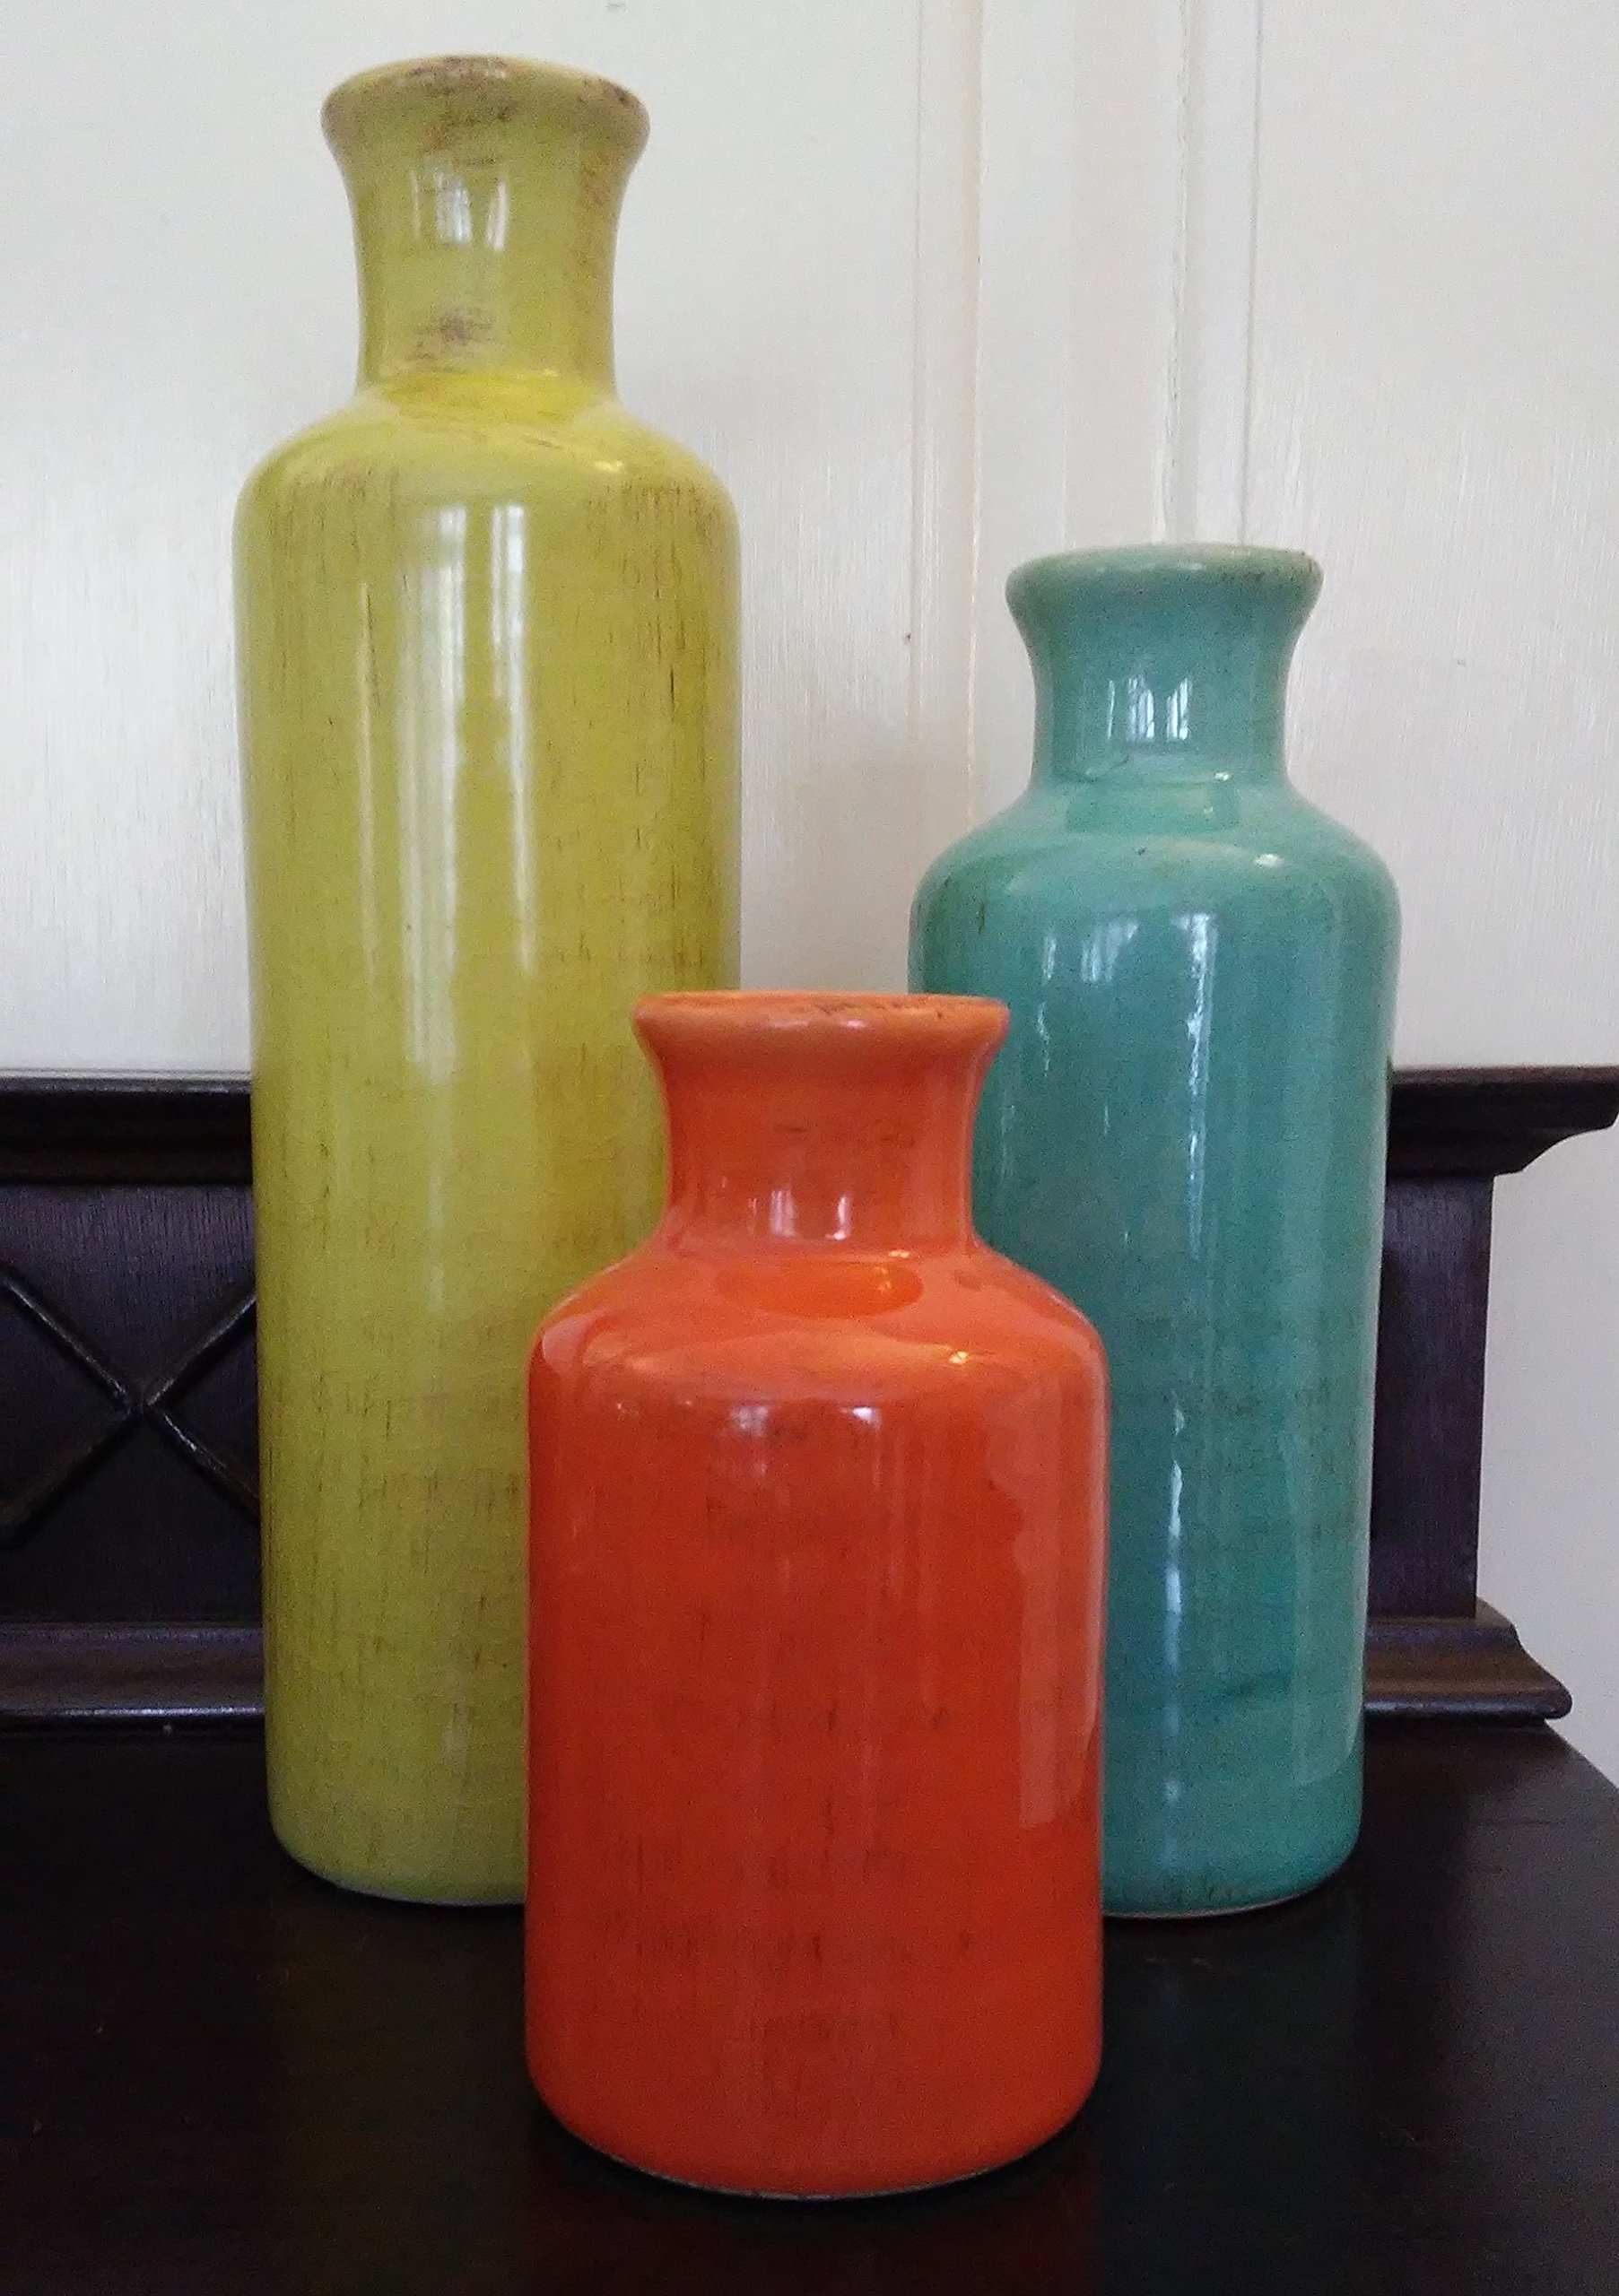 "Sullivans 5-10"" Set of 3 Decorative Crackled Vases in Orange, Green, and Blue - Set of 3 ceramic bottles with crackled, distressed colored glazes of chartreuse, aqua, and burnt orange Their fun colors will complements almost any decor and add just the right touch for favorite stems or to simply stand alone Measure 5, 7, and 10 inches high, with a 1 inch opening and are water tight - vases, kitchen-dining-room-decor, kitchen-dining-room - 91E2zD0LXzL -"